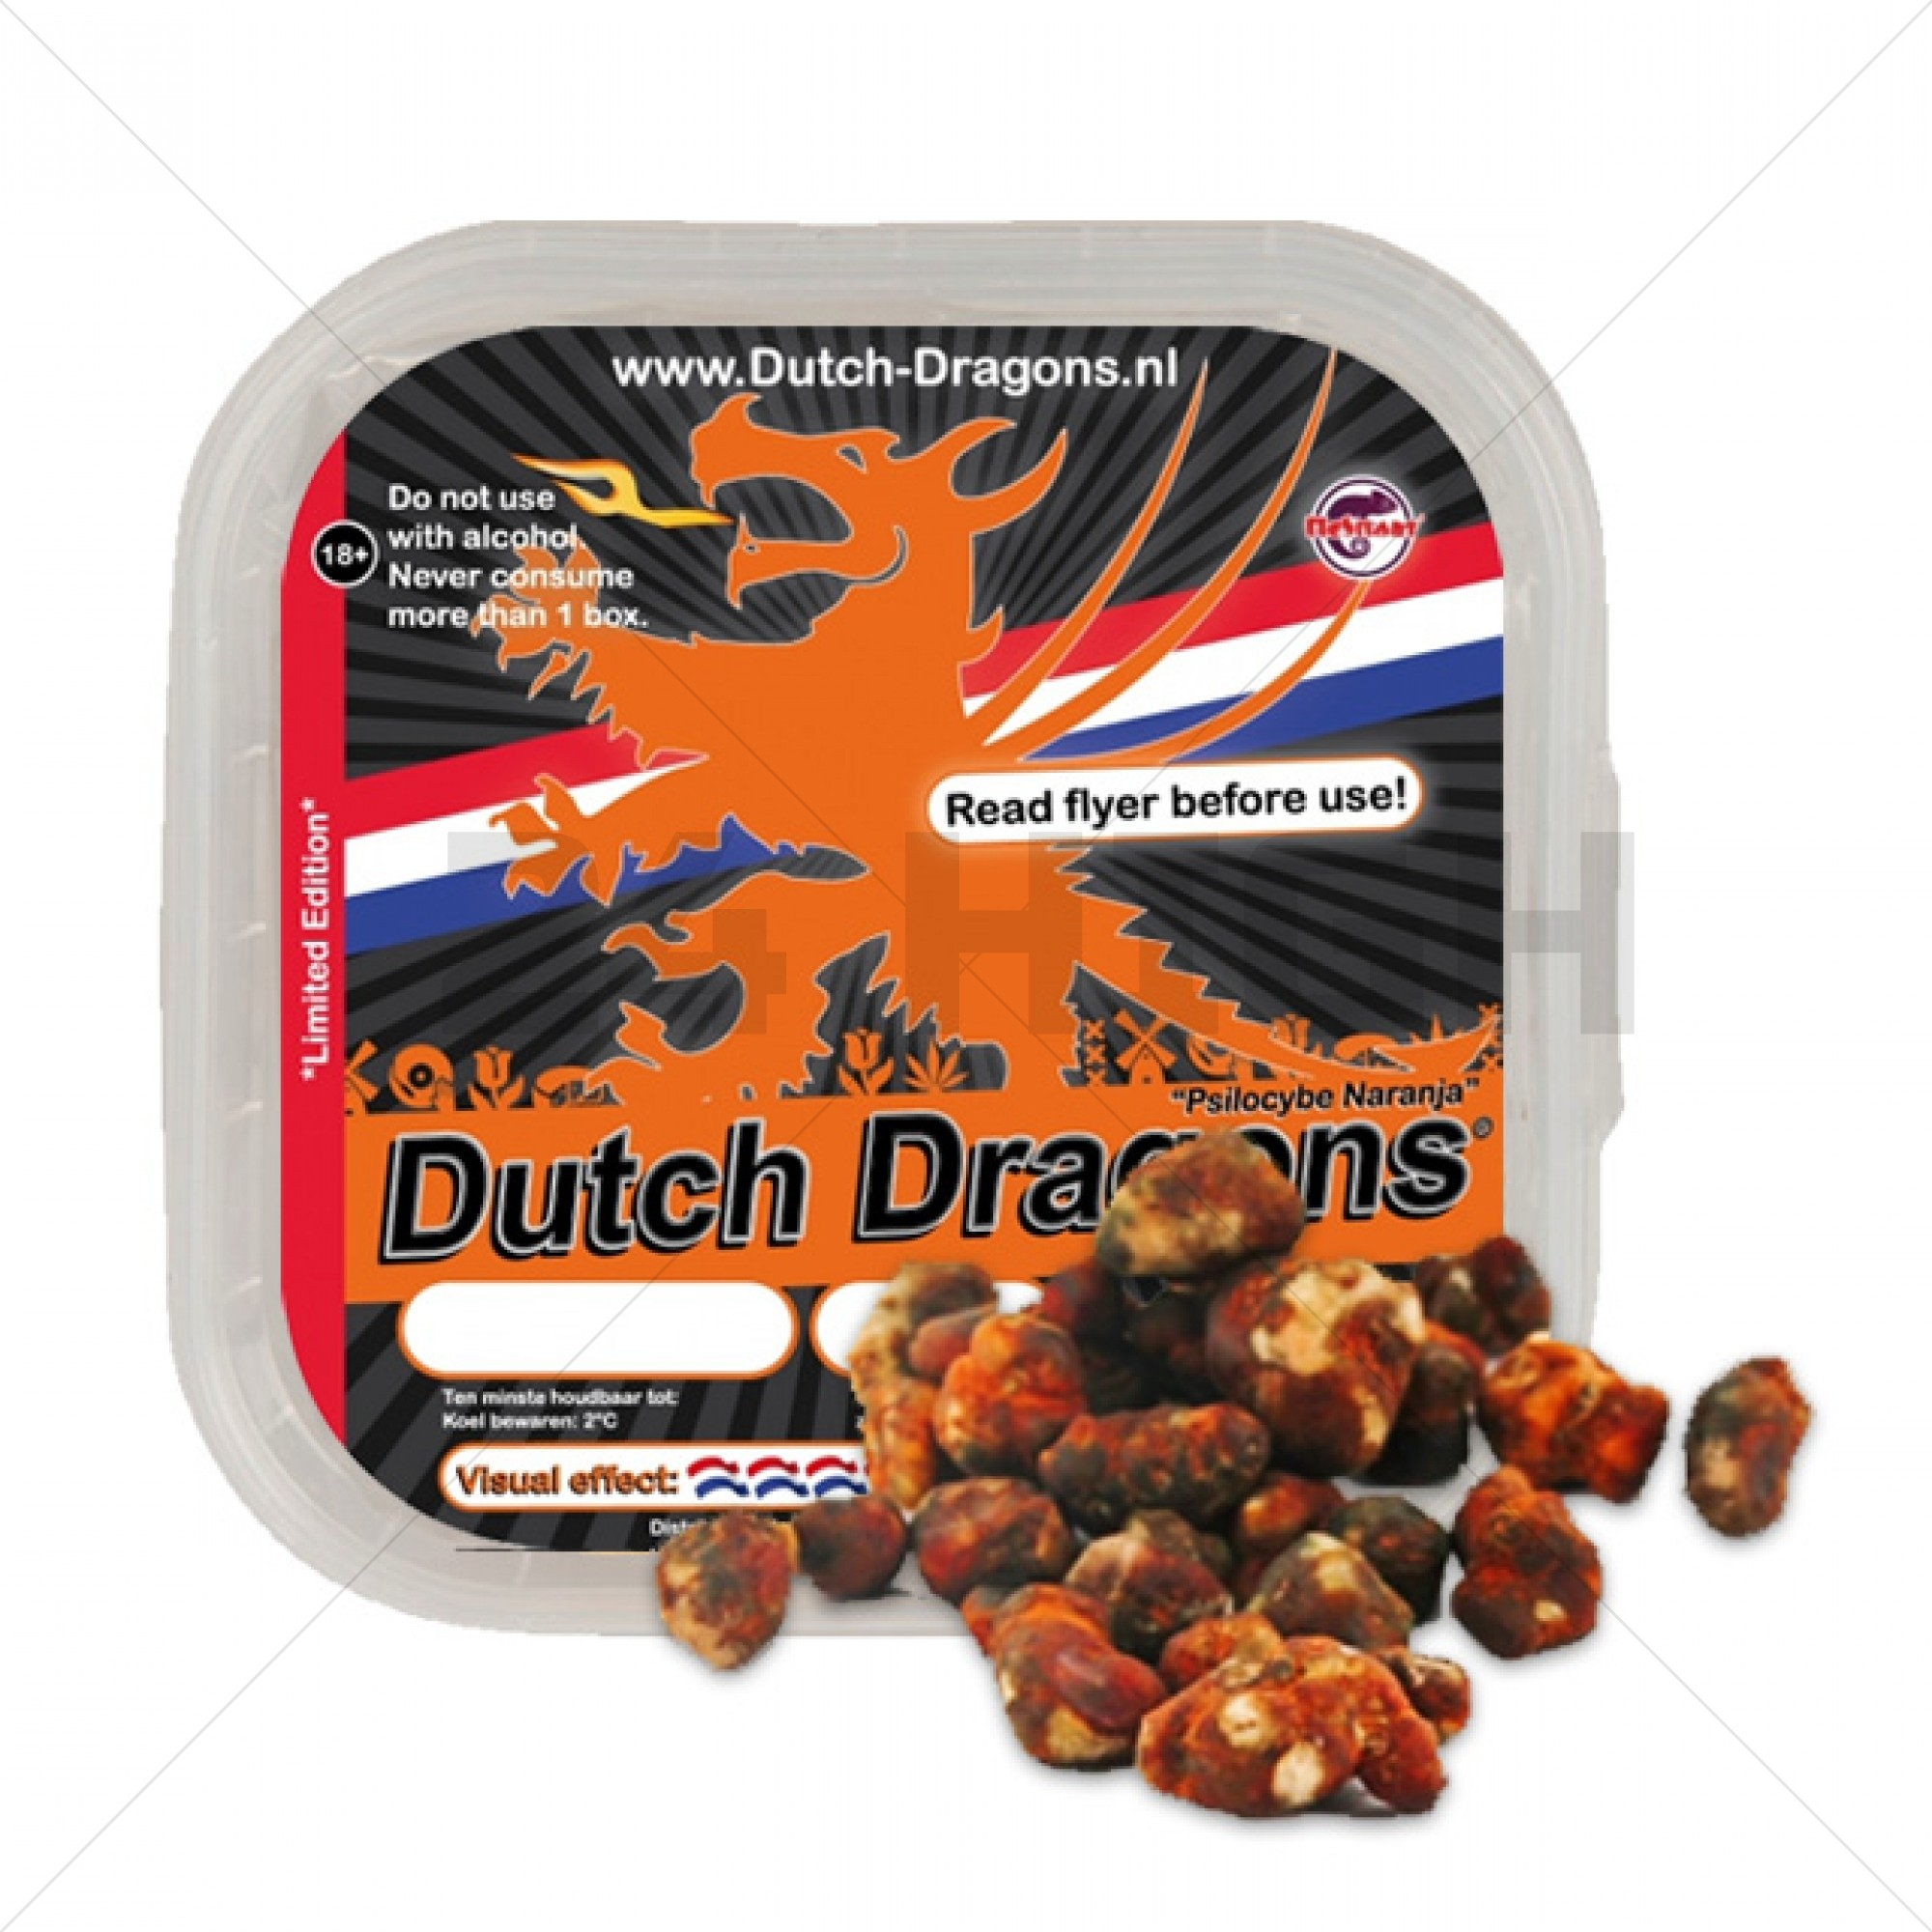 Dutch Dragons Truffels